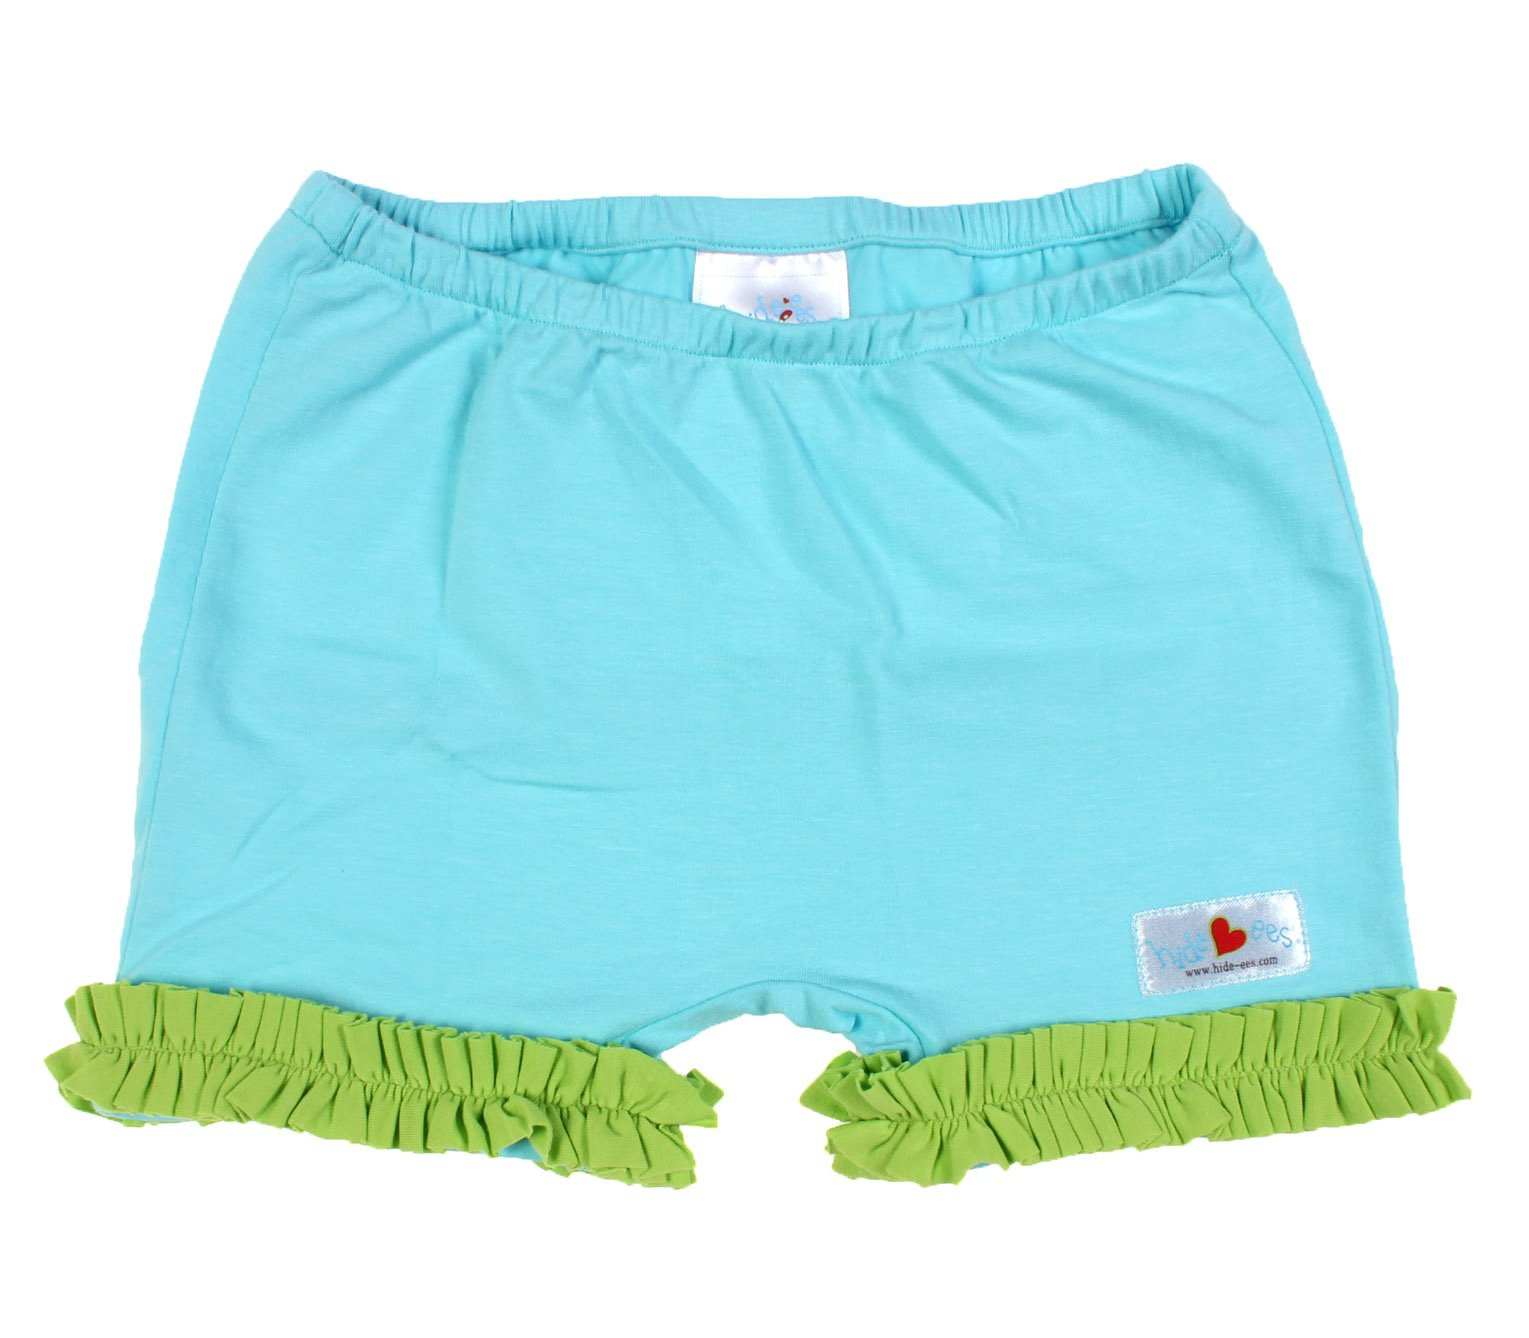 Hide-ees Better Than Bloomers Girls Under Dress Shorts WITH Ruffle (2T-4T, Sea Glass-ees)